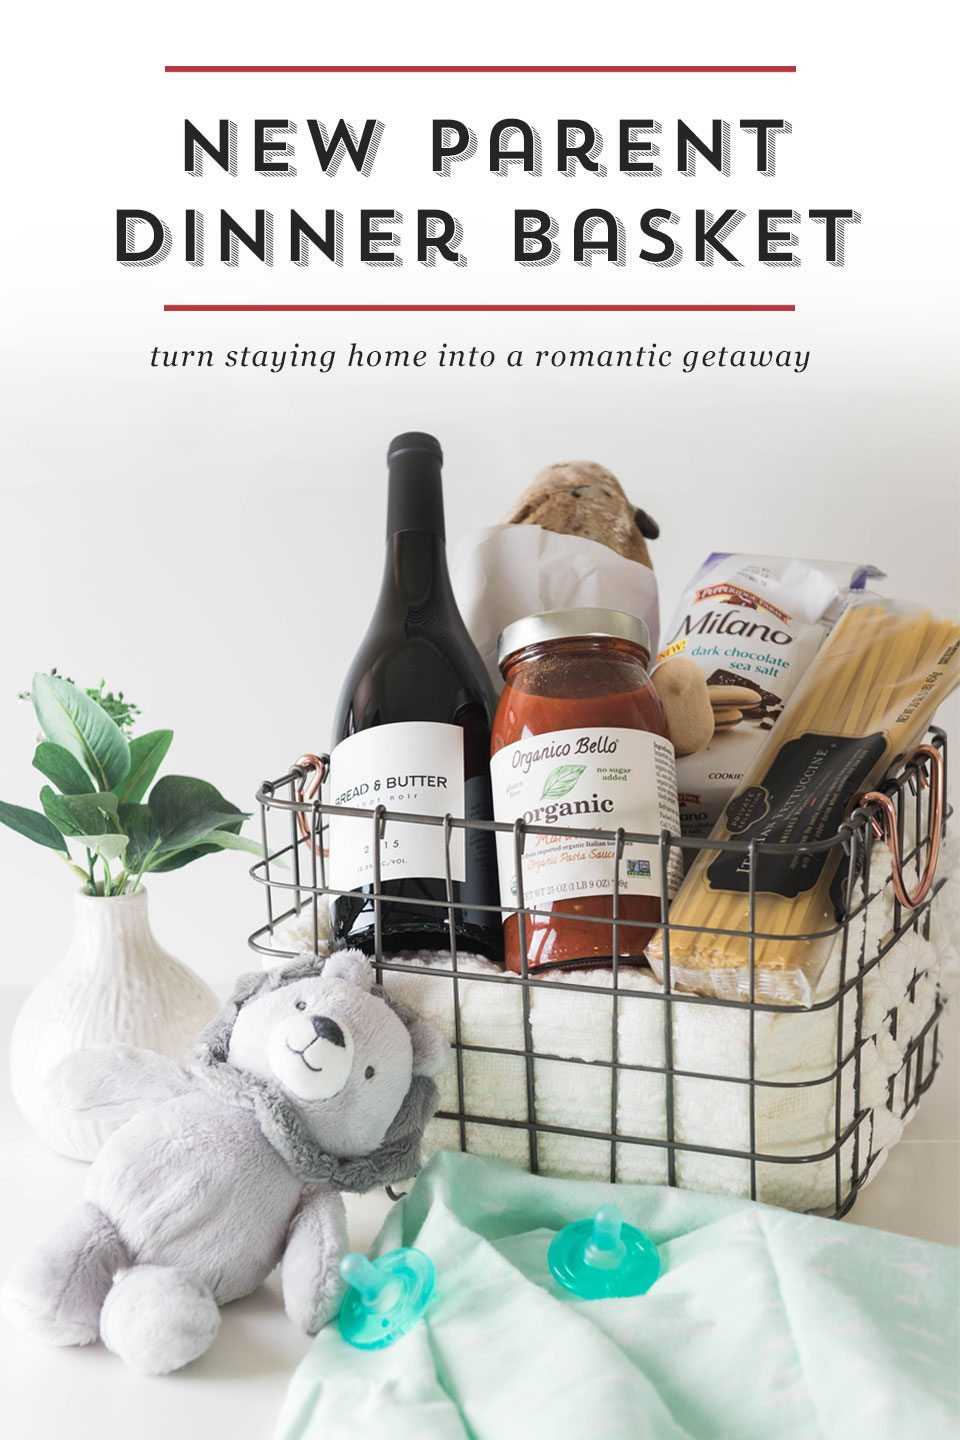 Best ideas about Parents Gift Ideas . Save or Pin DIY Date Night Gift Basket Now.